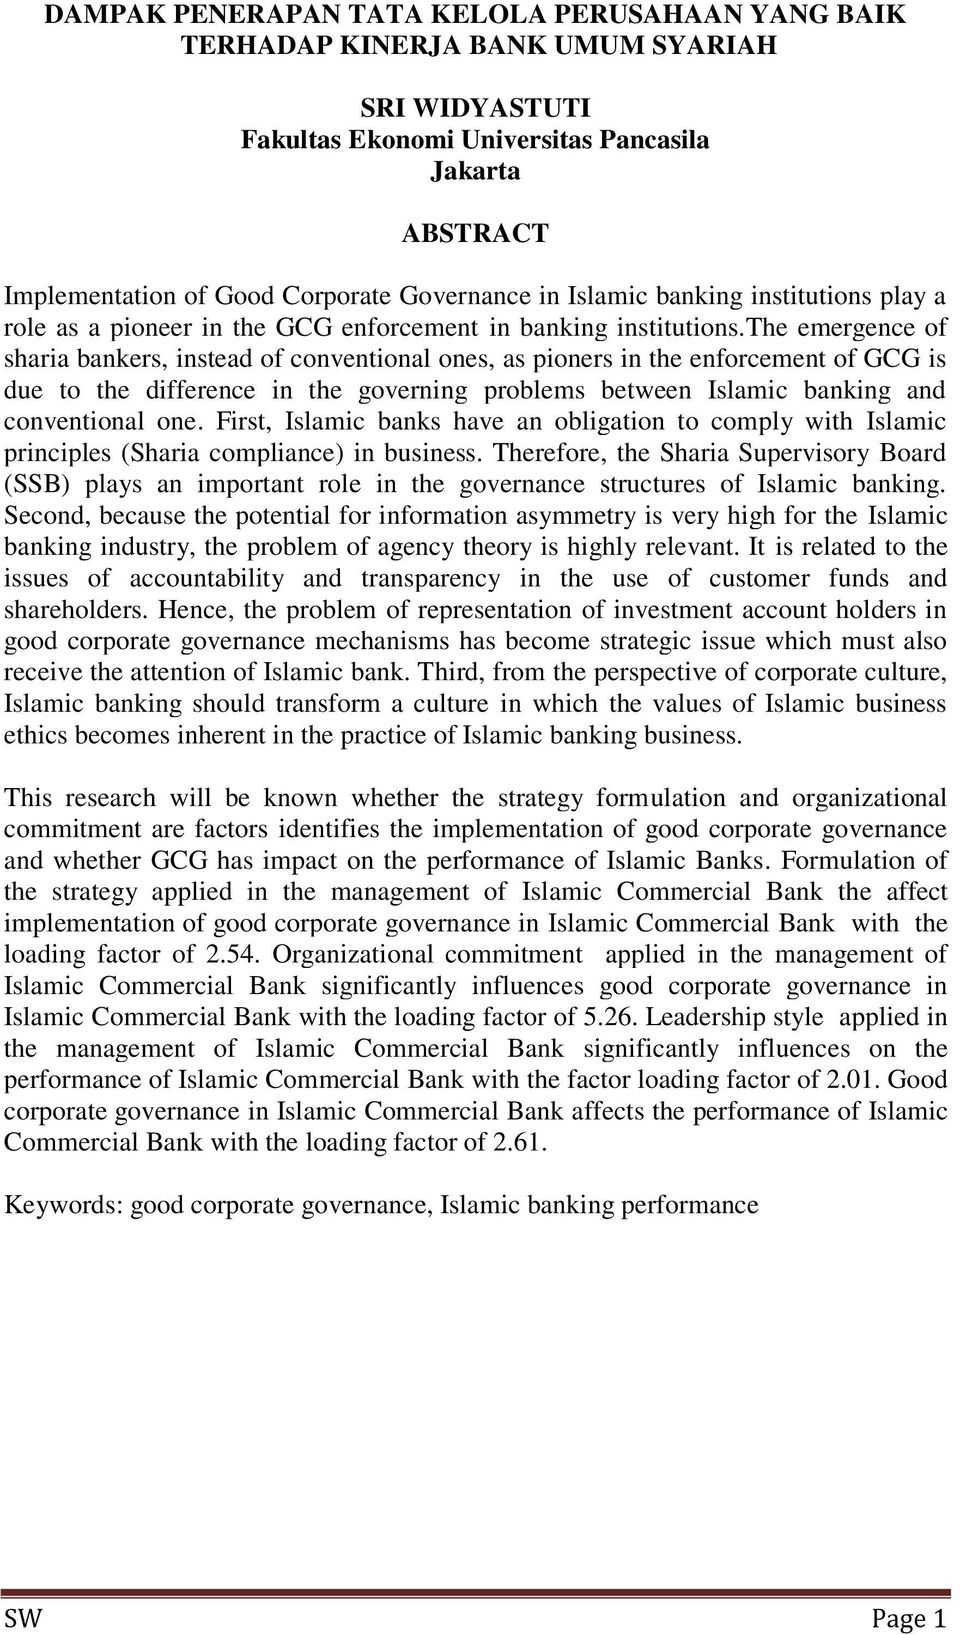 the emergence of sharia bankers, instead of conventional ones, as pioners in the enforcement of GCG is due to the difference in the governing problems between Islamic banking and conventional one.